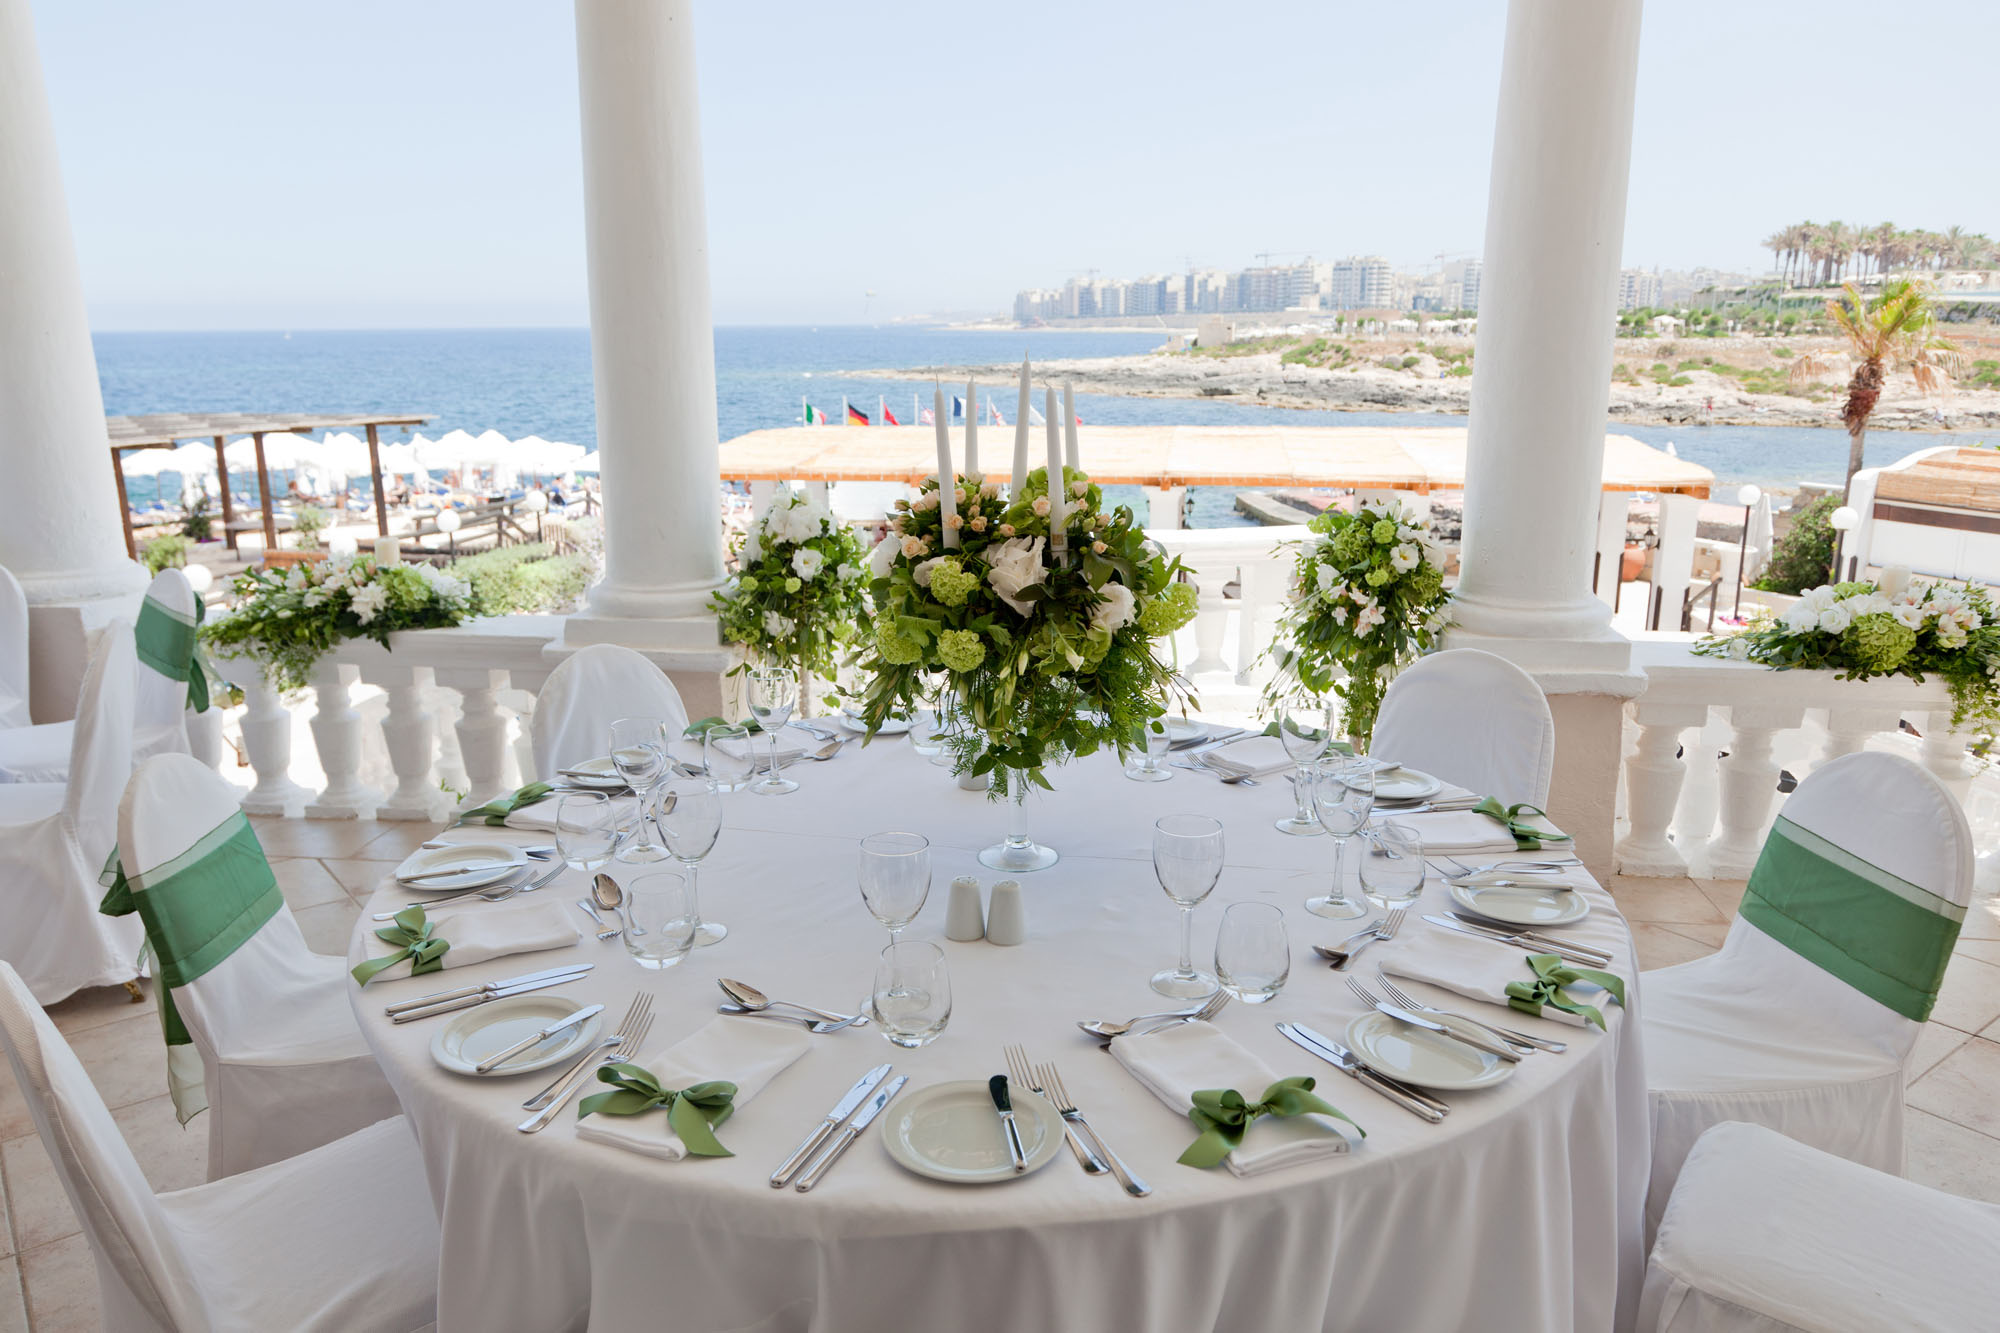 Villa Mediterranea Malta Wedding Venue